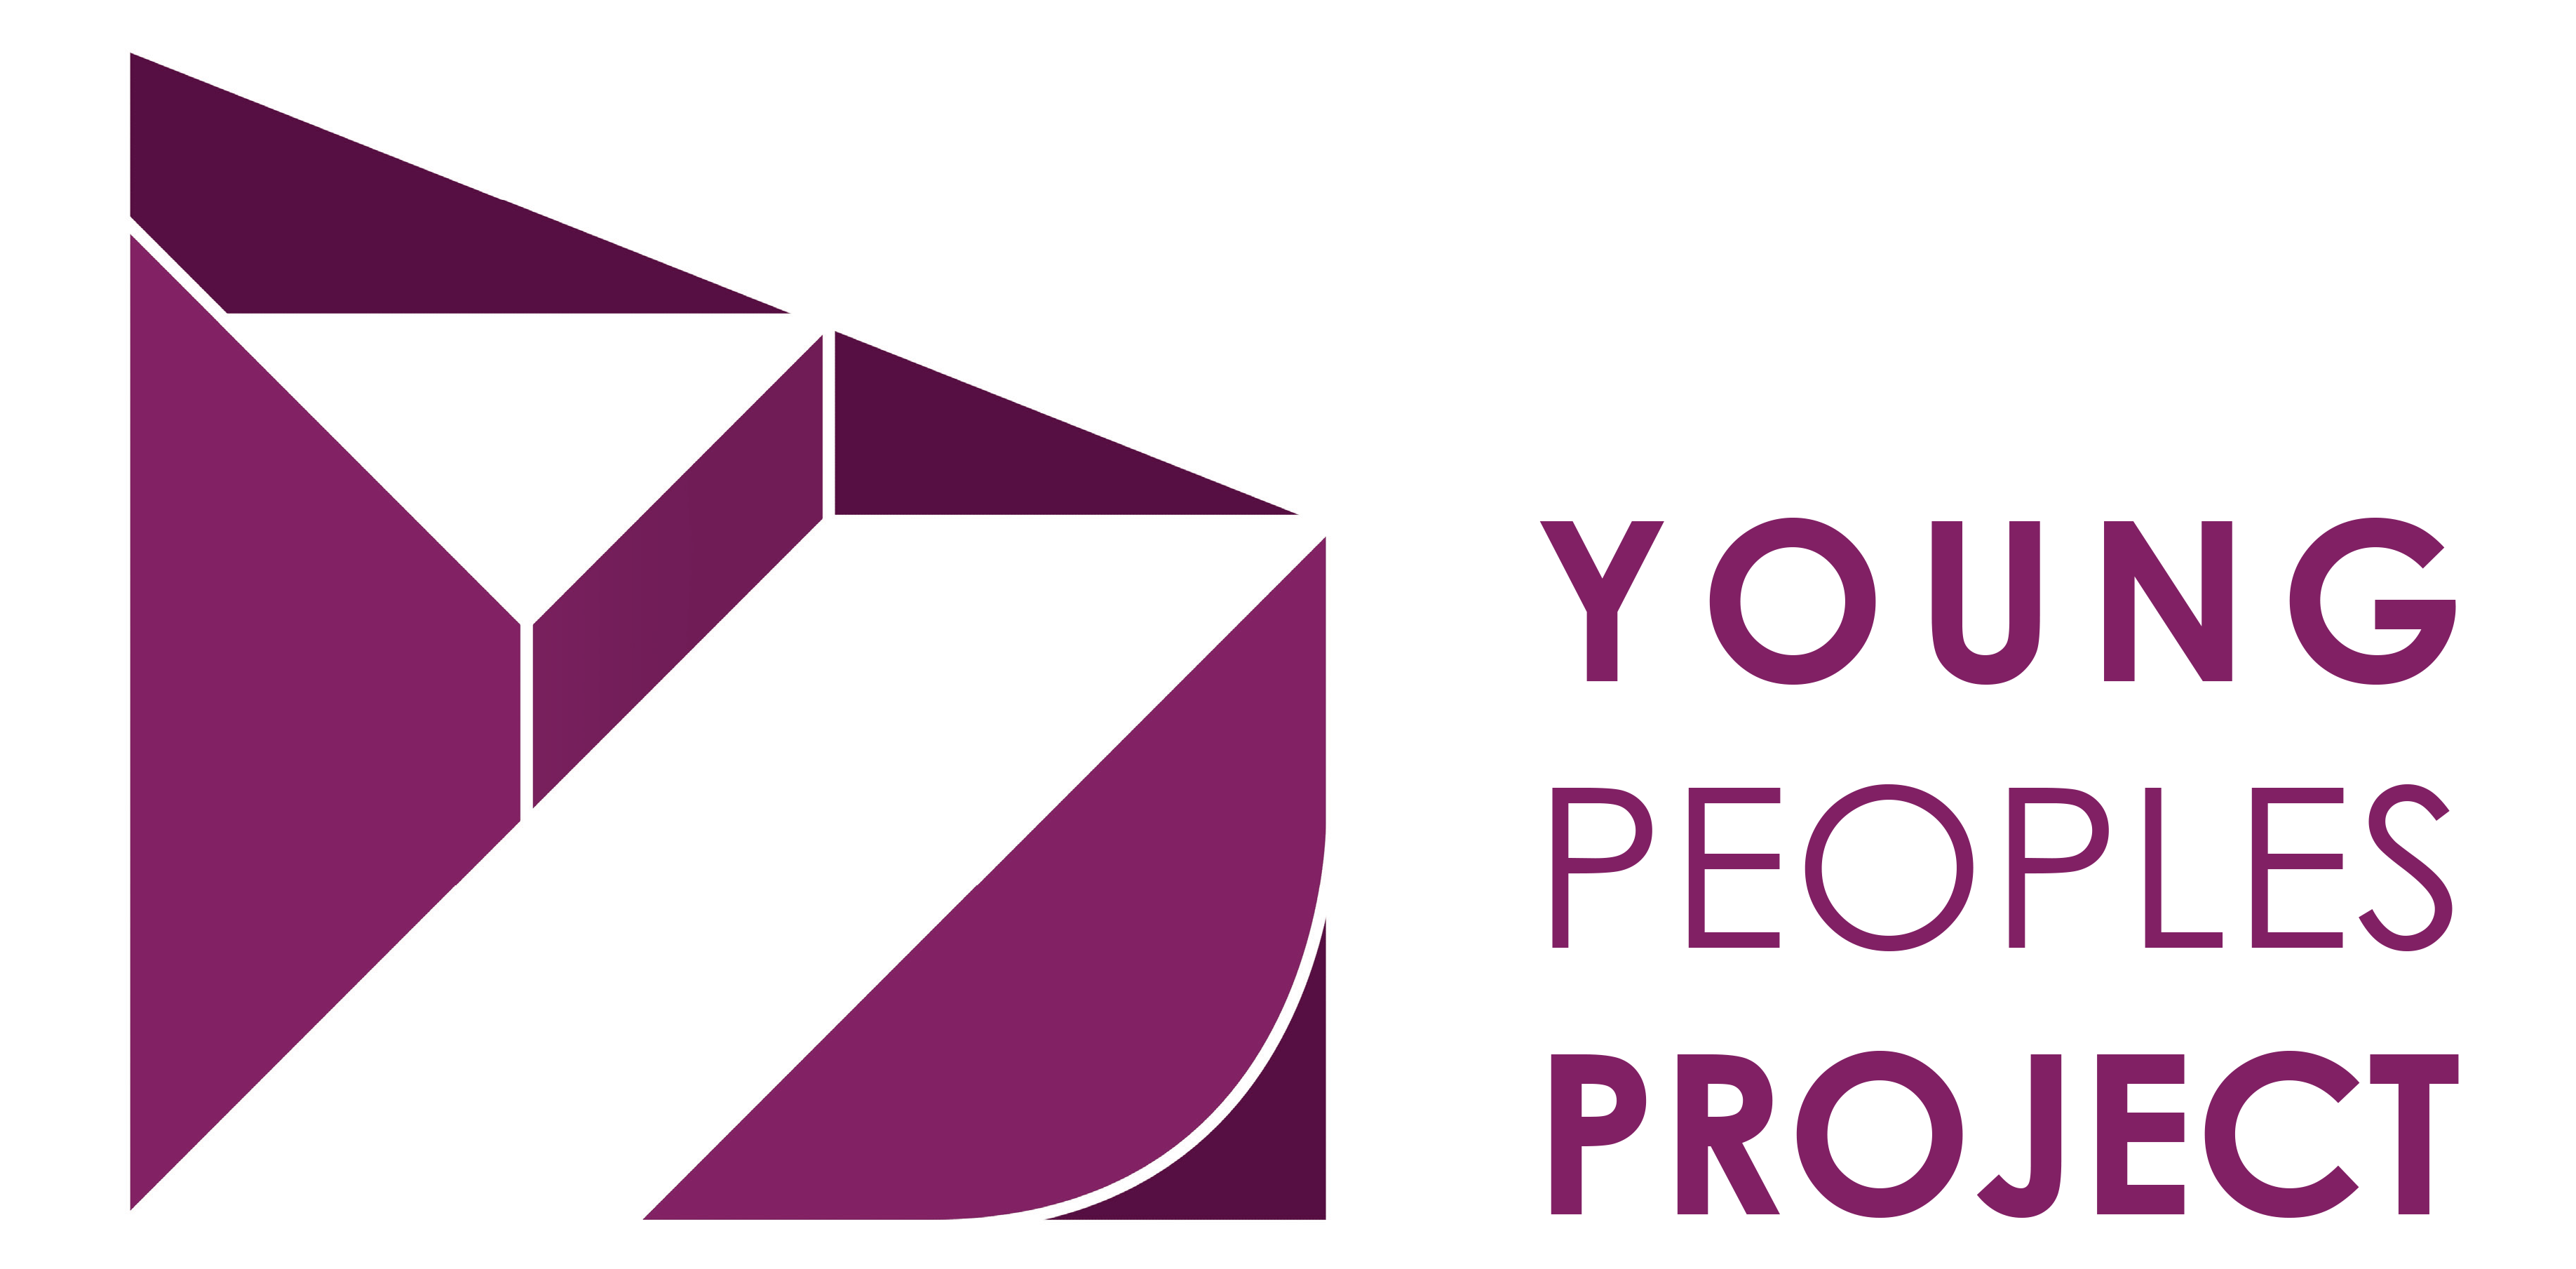 ypp LOGO PURPLE